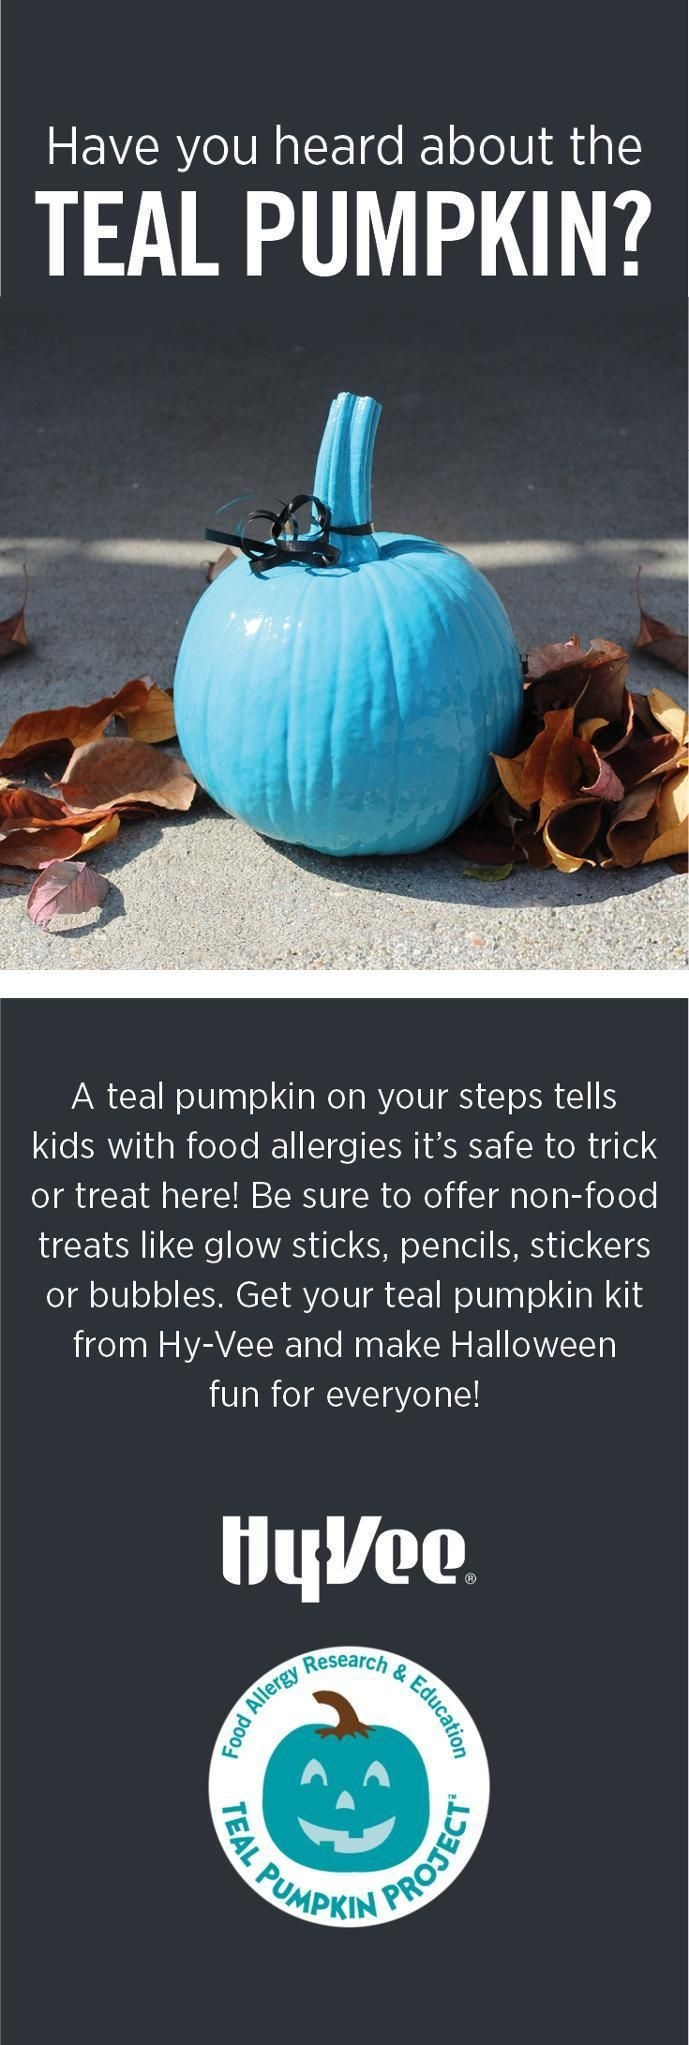 A teal pumpkin on your doorstep tells kids with food allergies it's safe to trick or treat here.